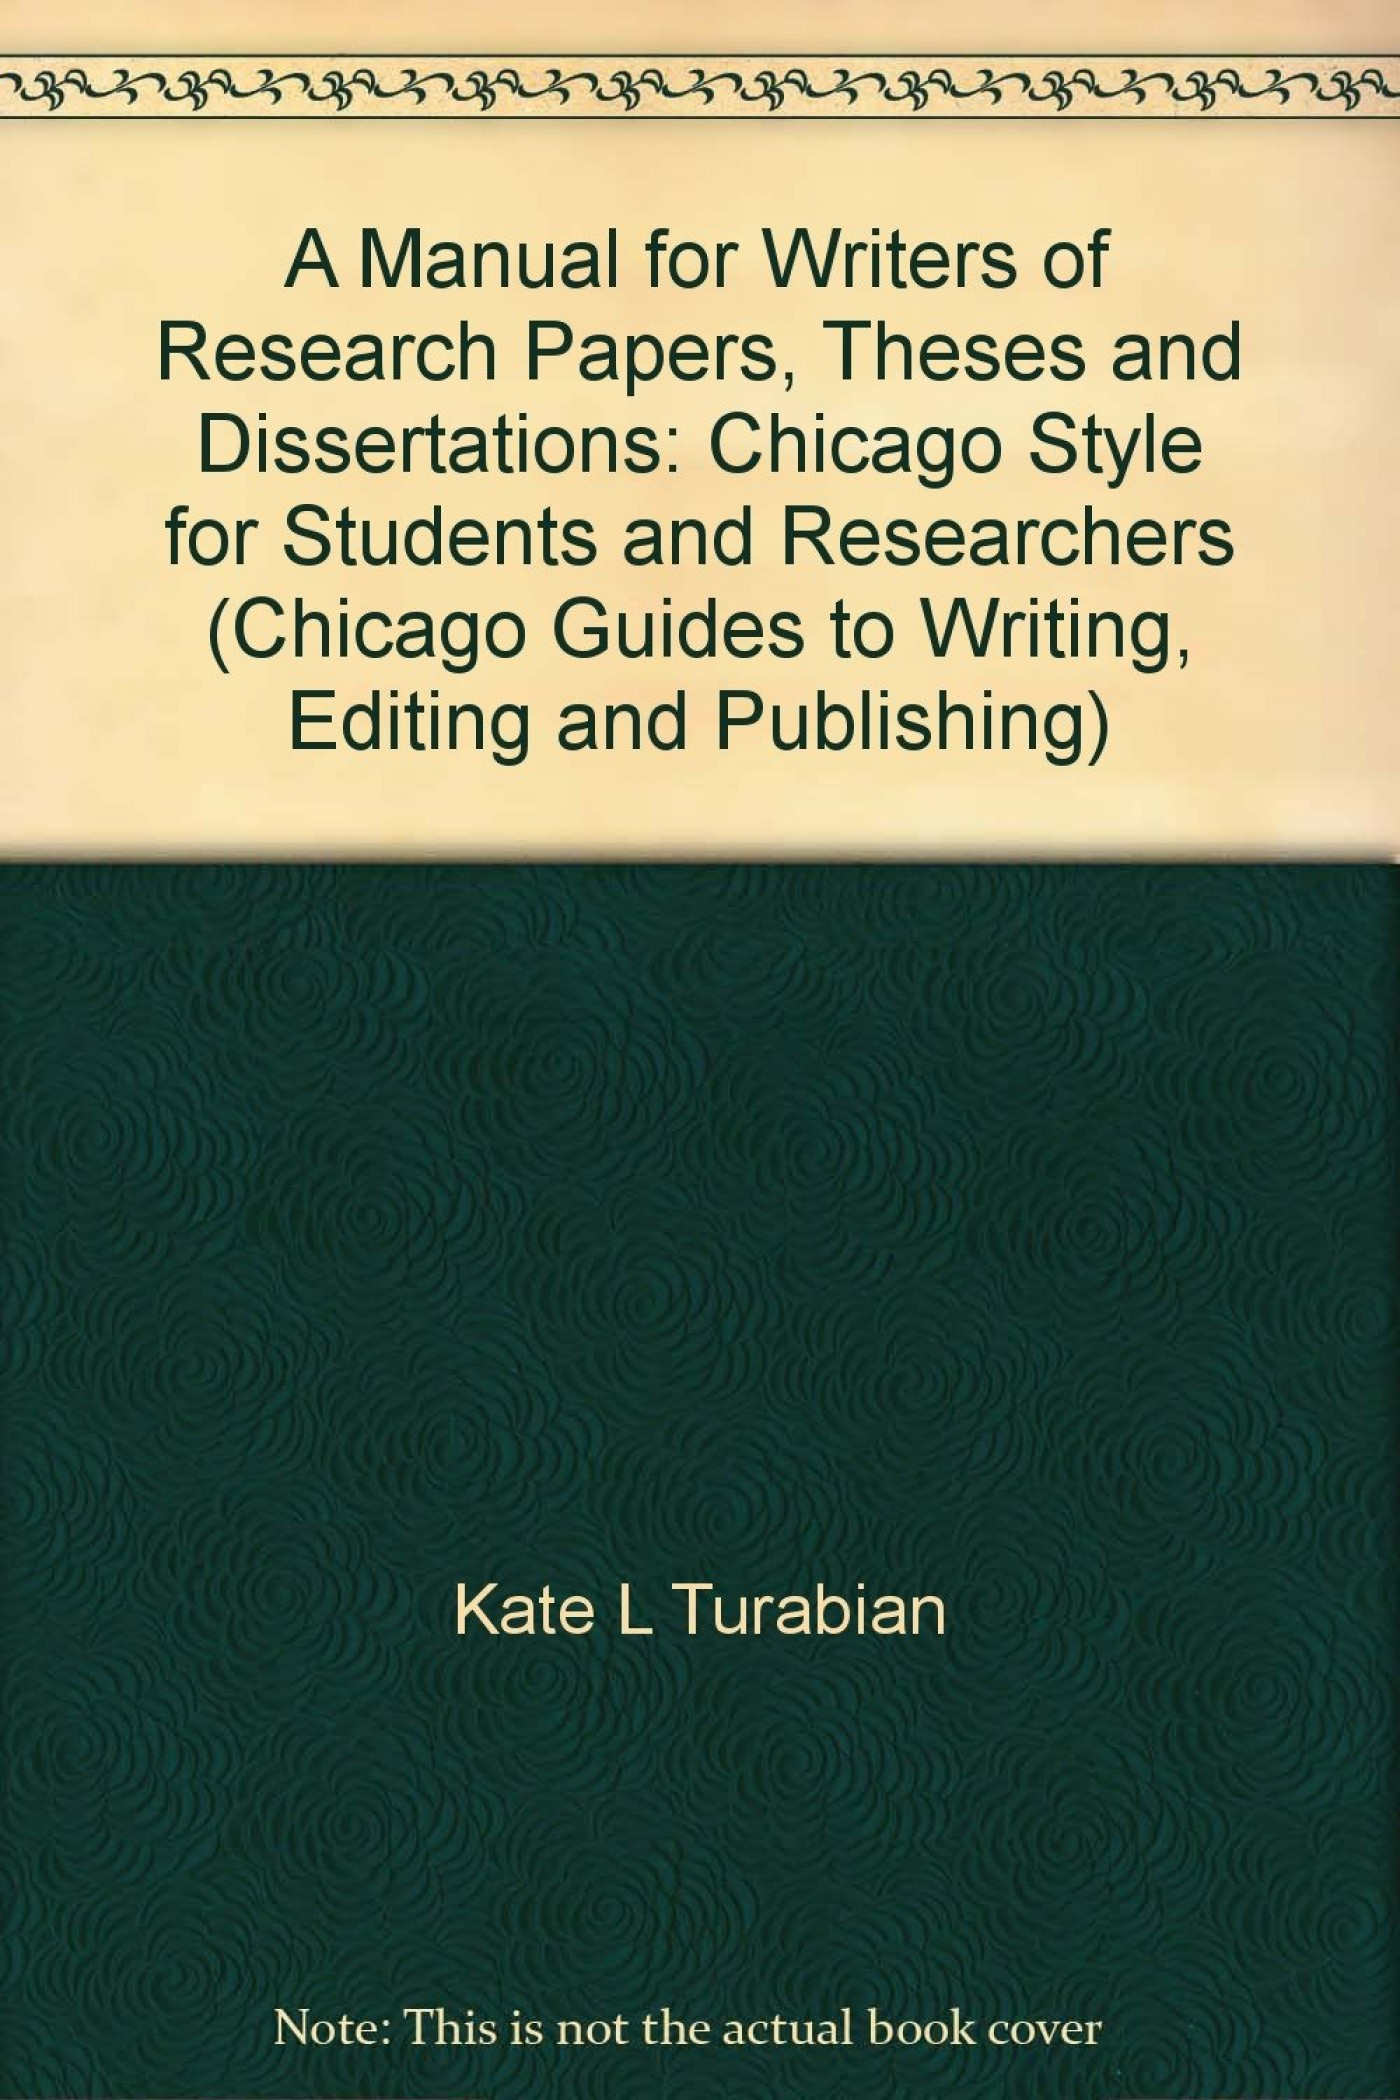 025 Research Paper Manual For Writers Of Papers Theses And Dissertations Turabian Amazing A Pdf 1400